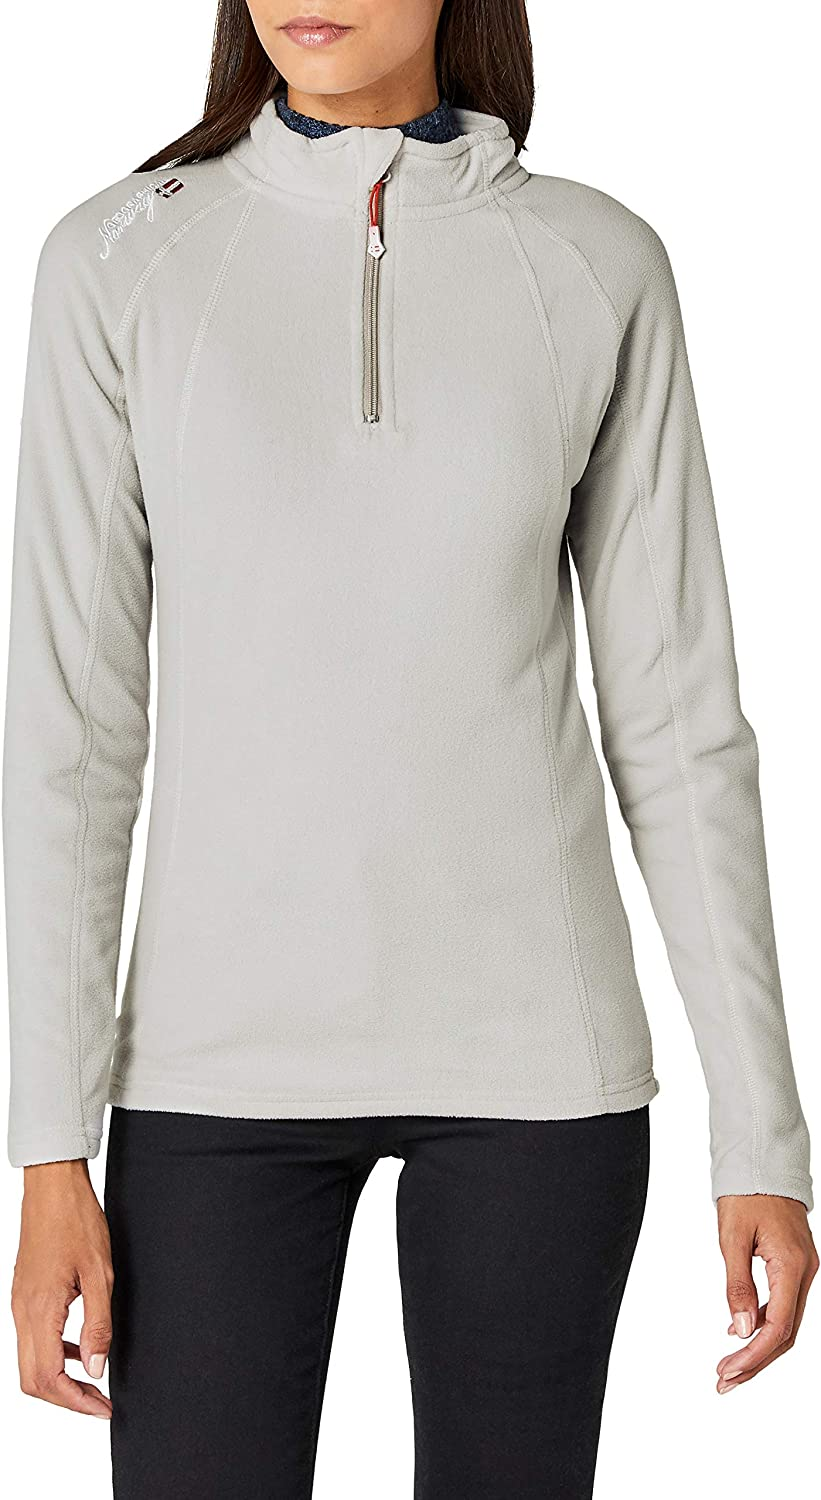 Geographical Norway Talmud Lady Half Zip Chaleco para Mujer